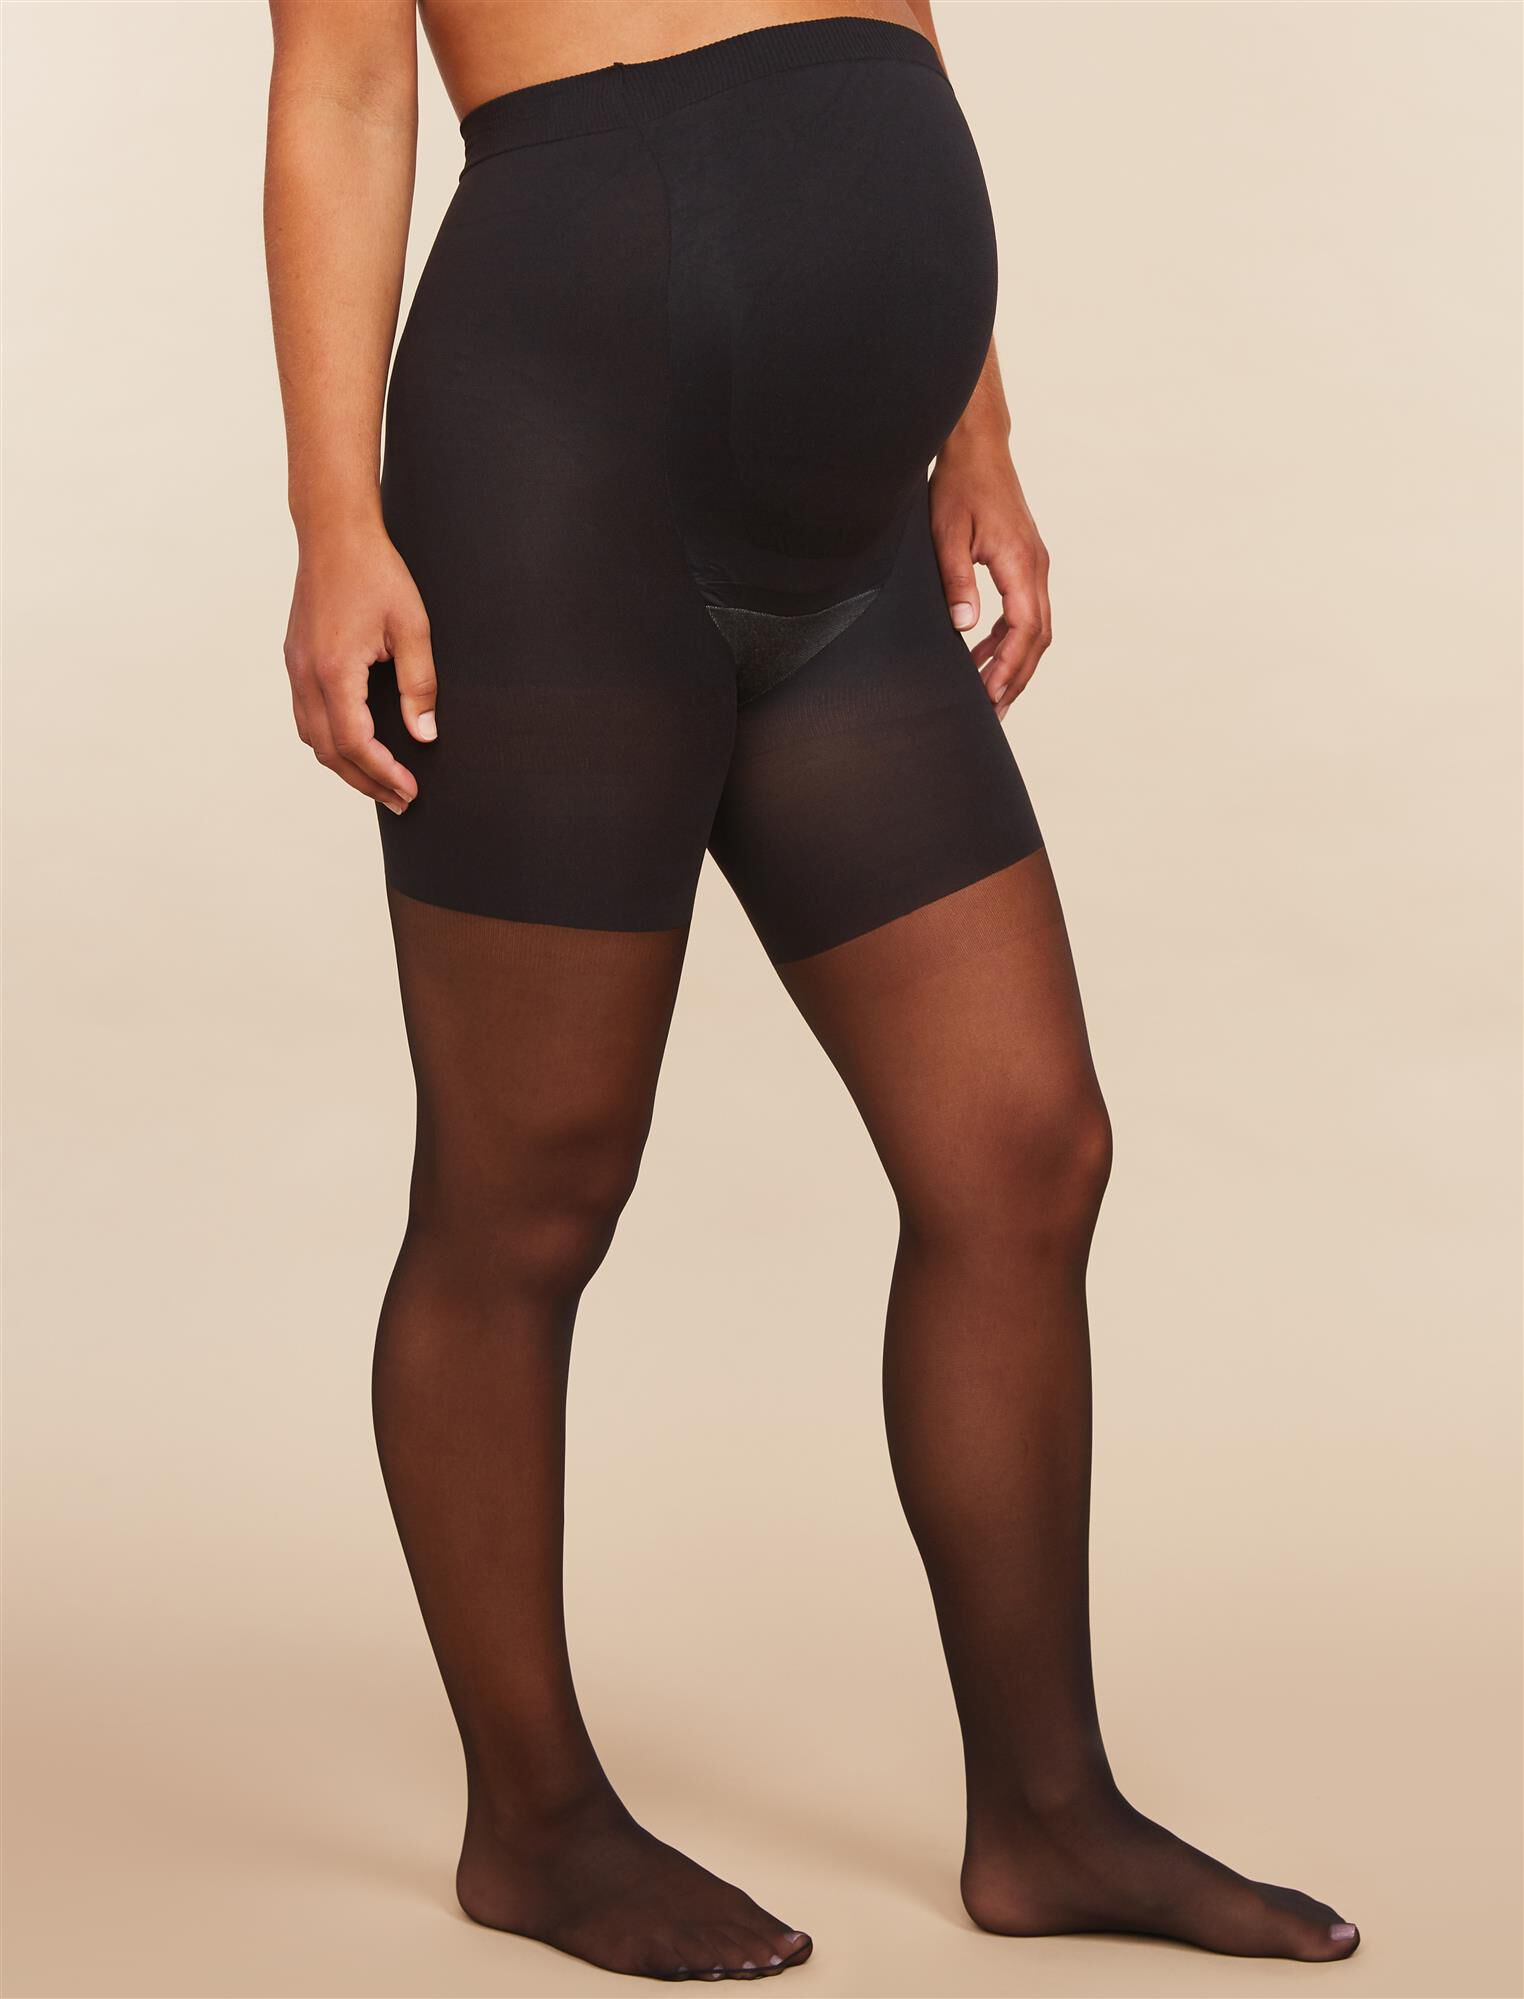 Assests By Sara Blakely Sheer Maternity Pantyhose